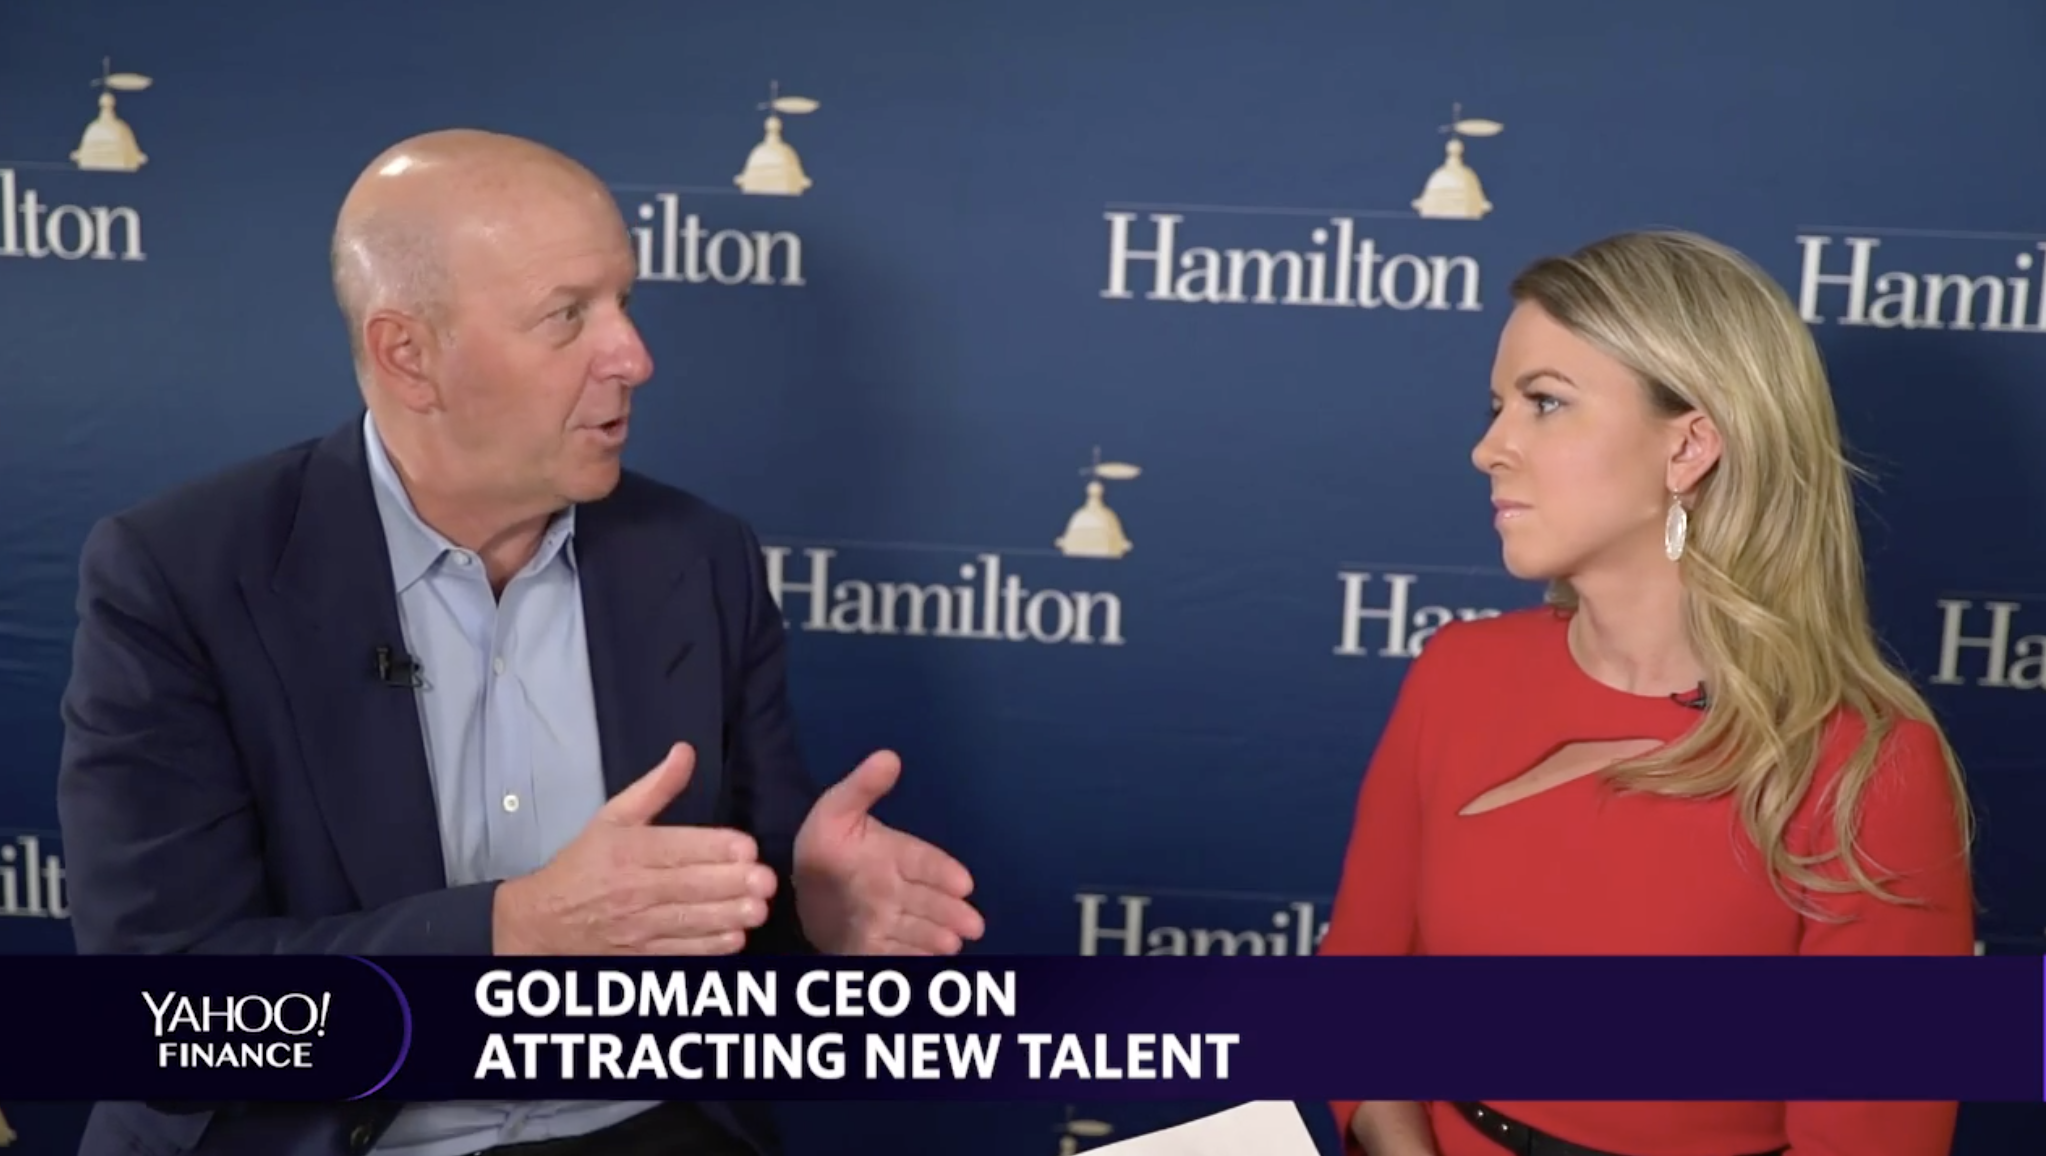 Goldman Sachs CEO on adapting strategy to fit 'evolving society'